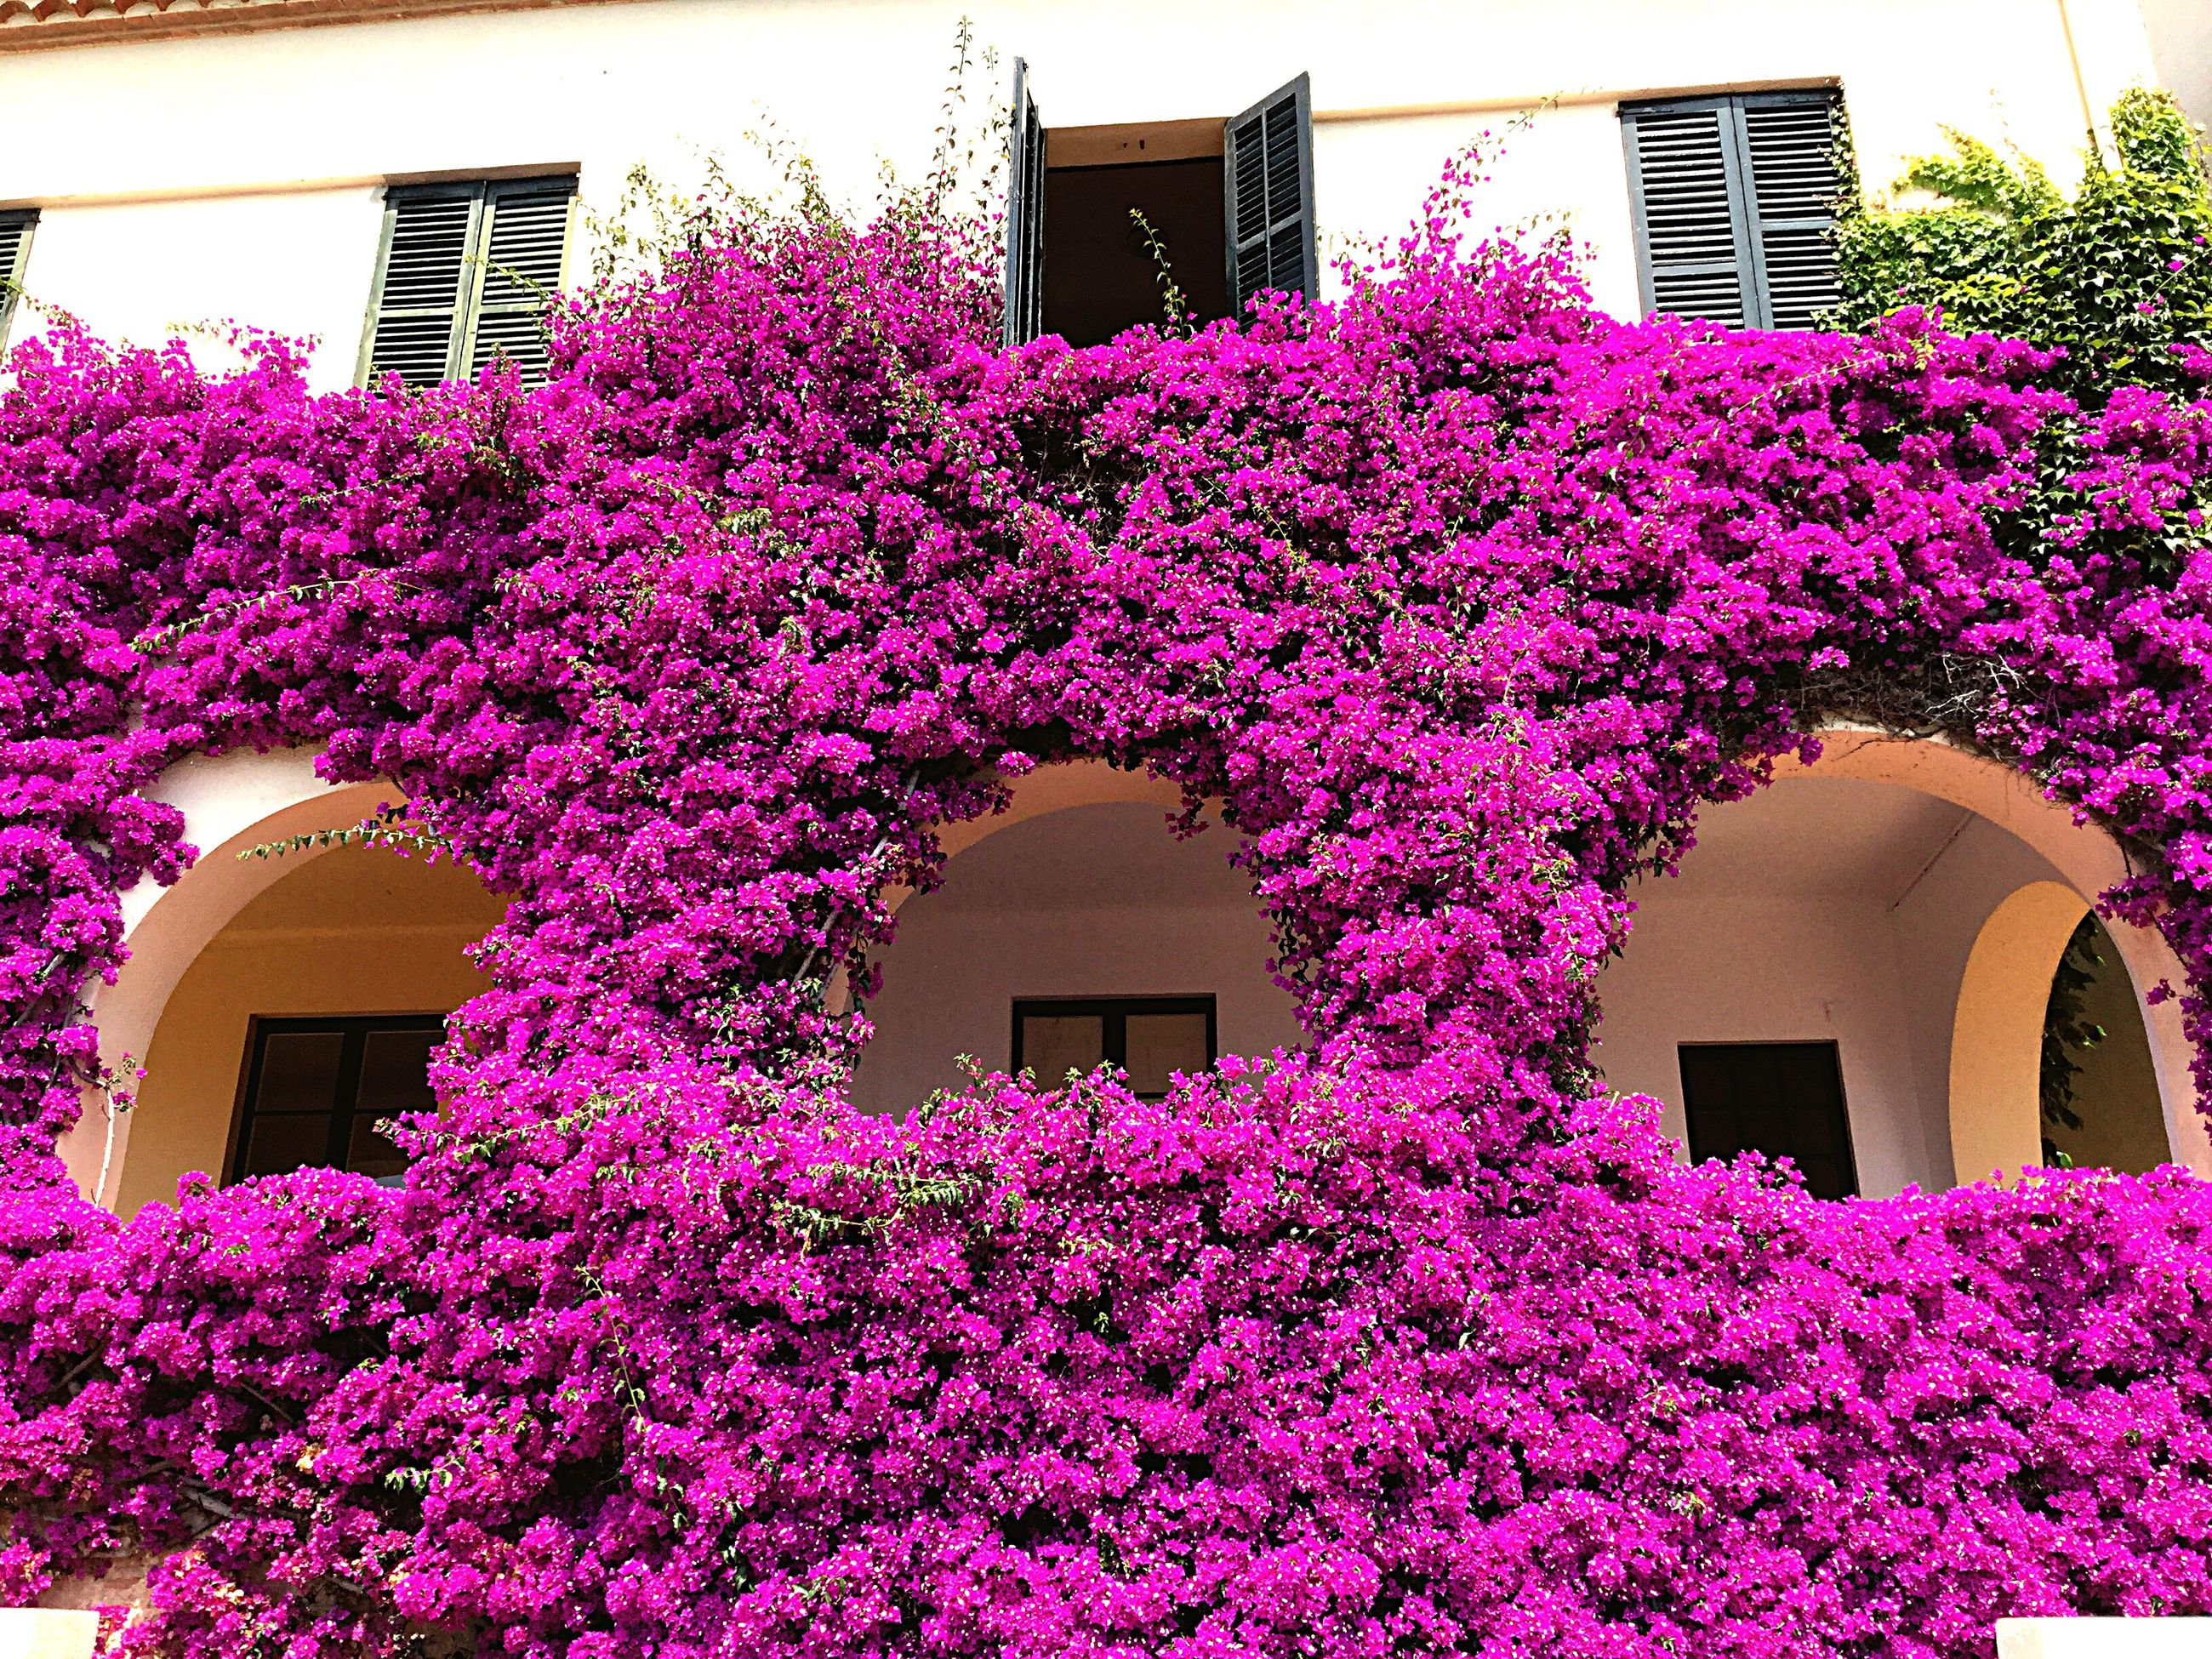 flower, building exterior, architecture, built structure, freshness, fragility, pink color, growth, tree, blossom, beauty in nature, low angle view, window, in bloom, nature, house, pink, petal, springtime, residential building